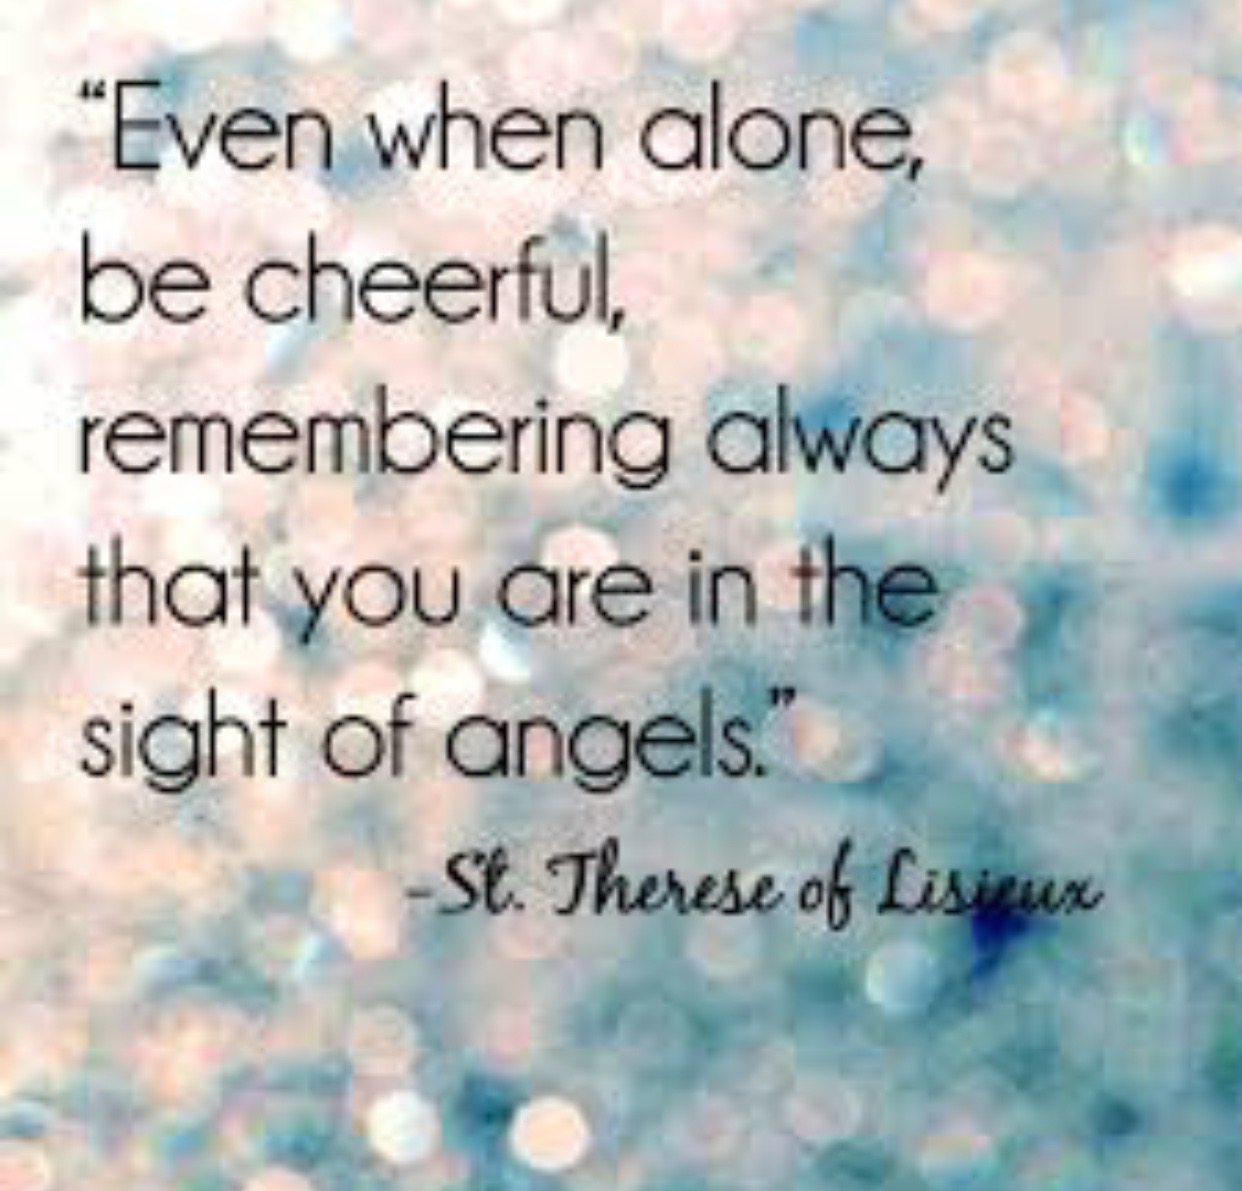 SAINT THERESE QUOTE